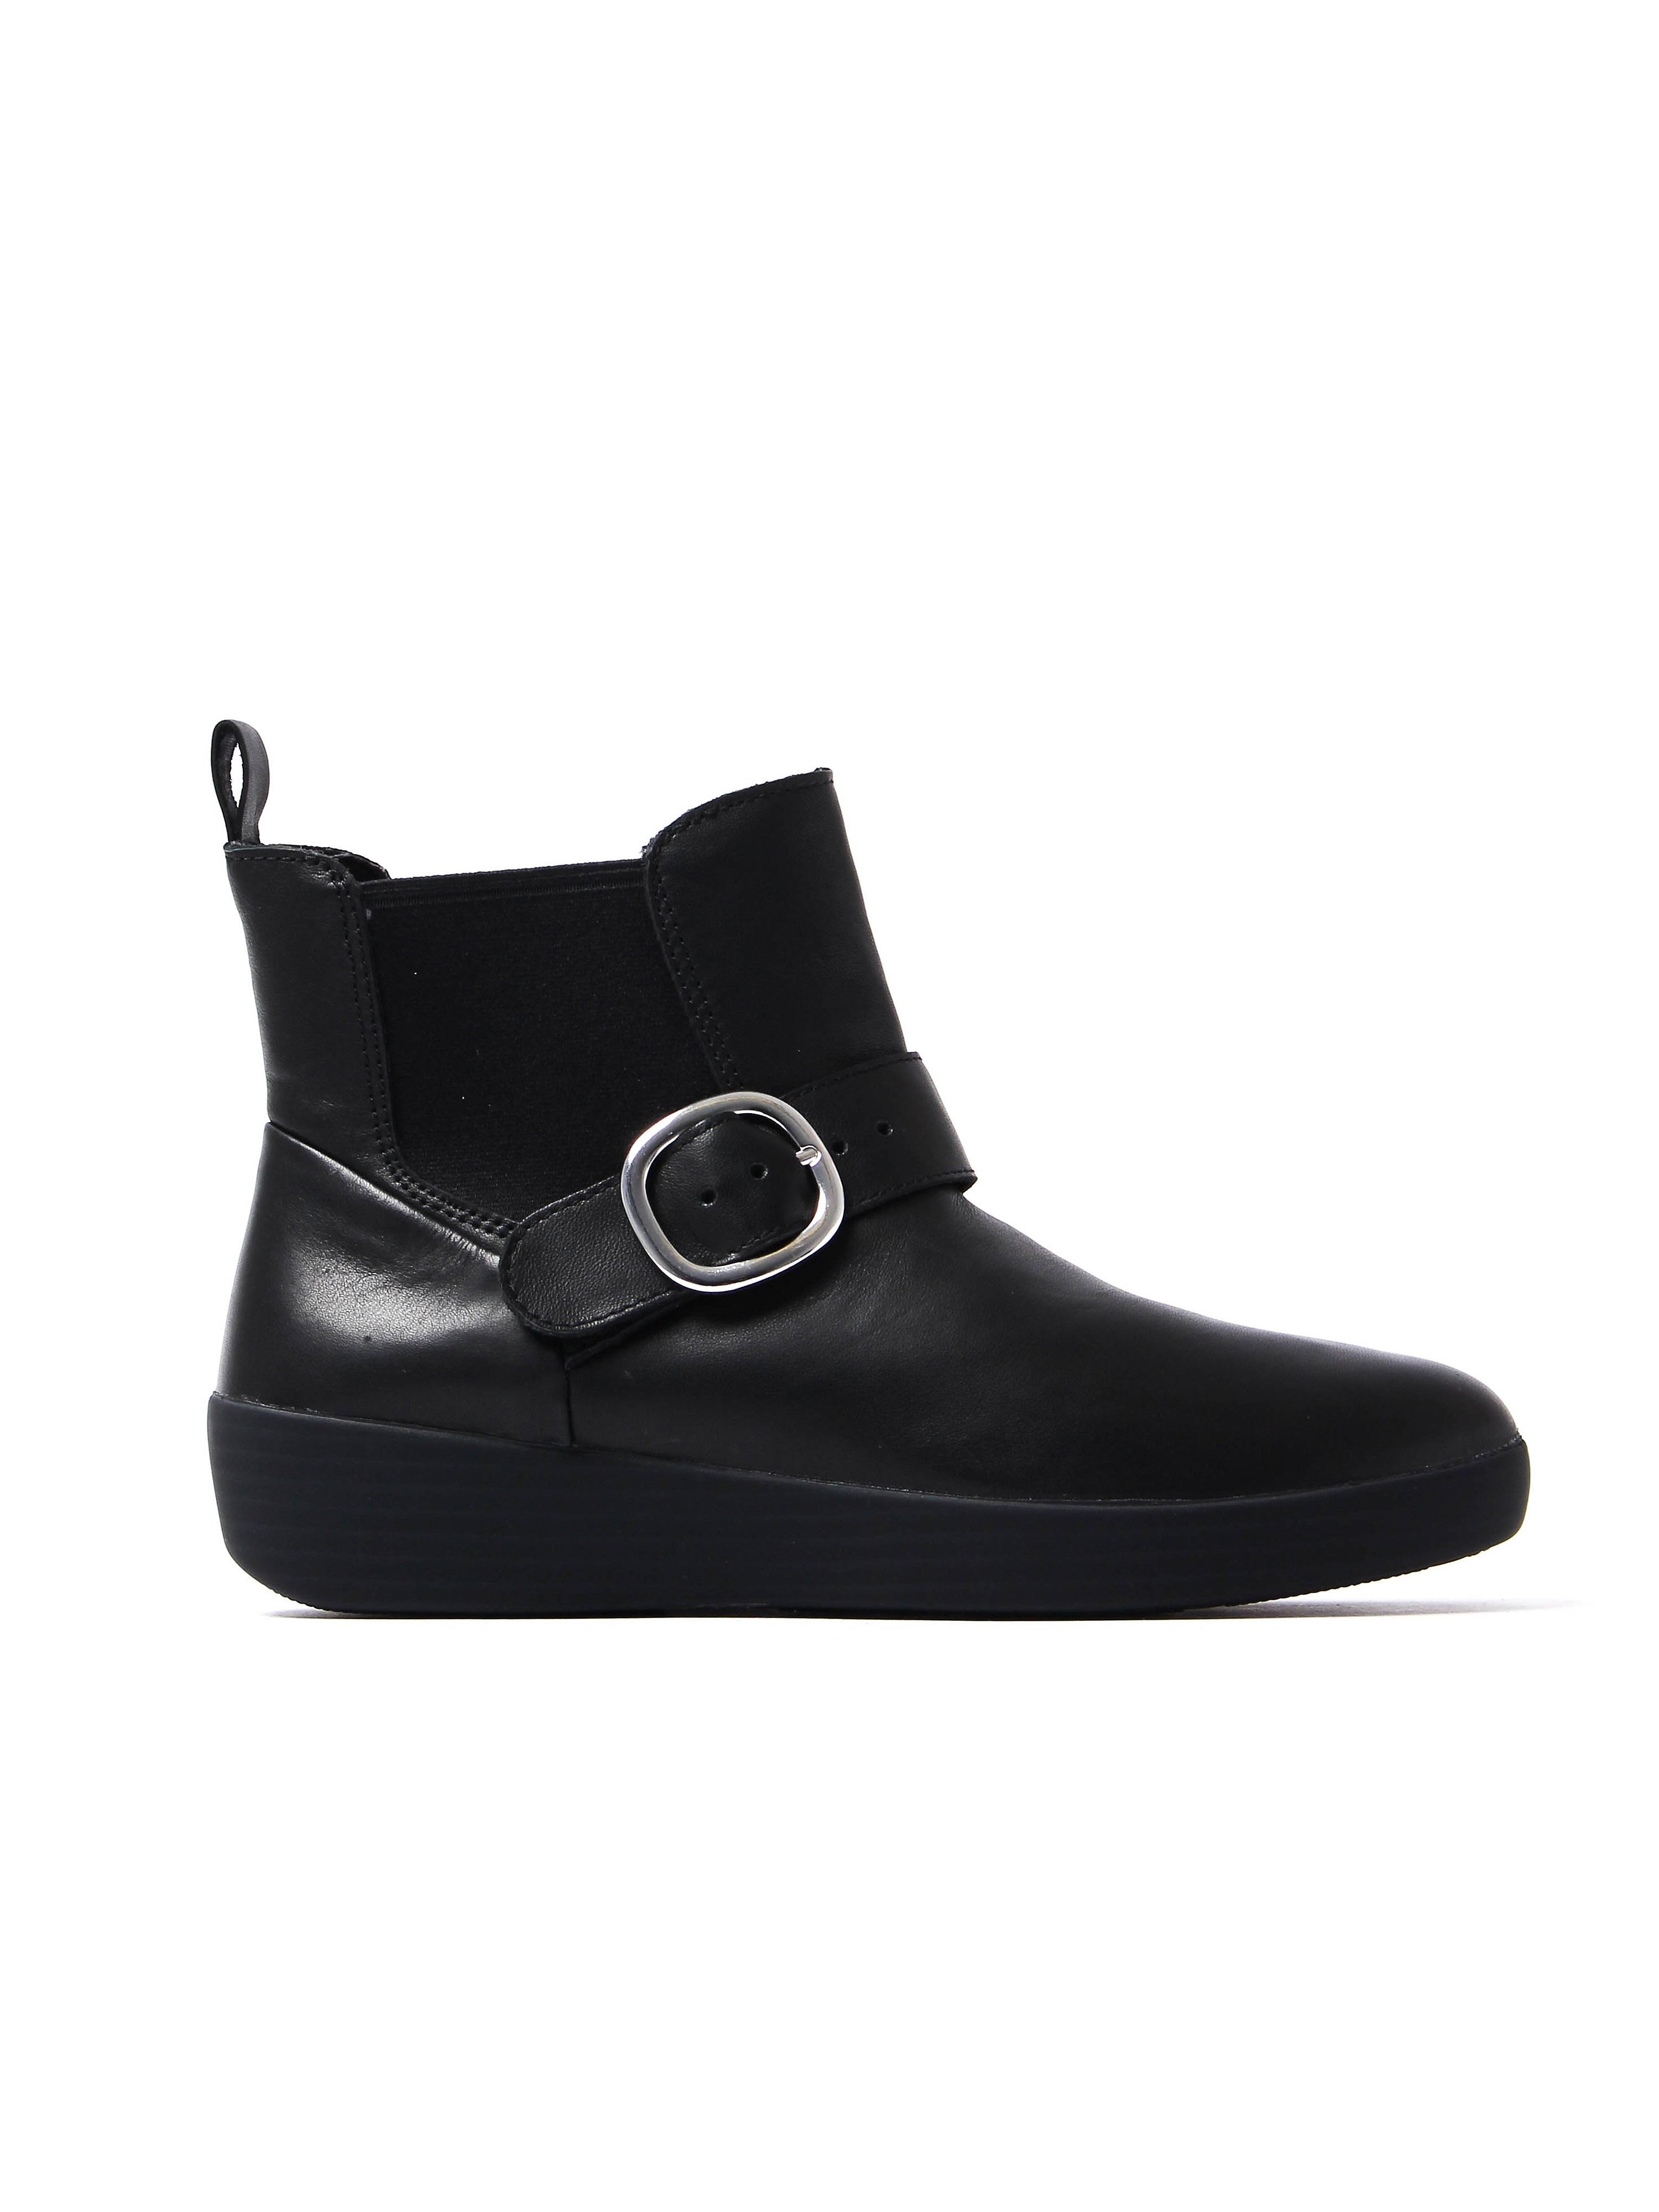 FitFlop Women's Superbuckle Chelsea Boots - Black Leather